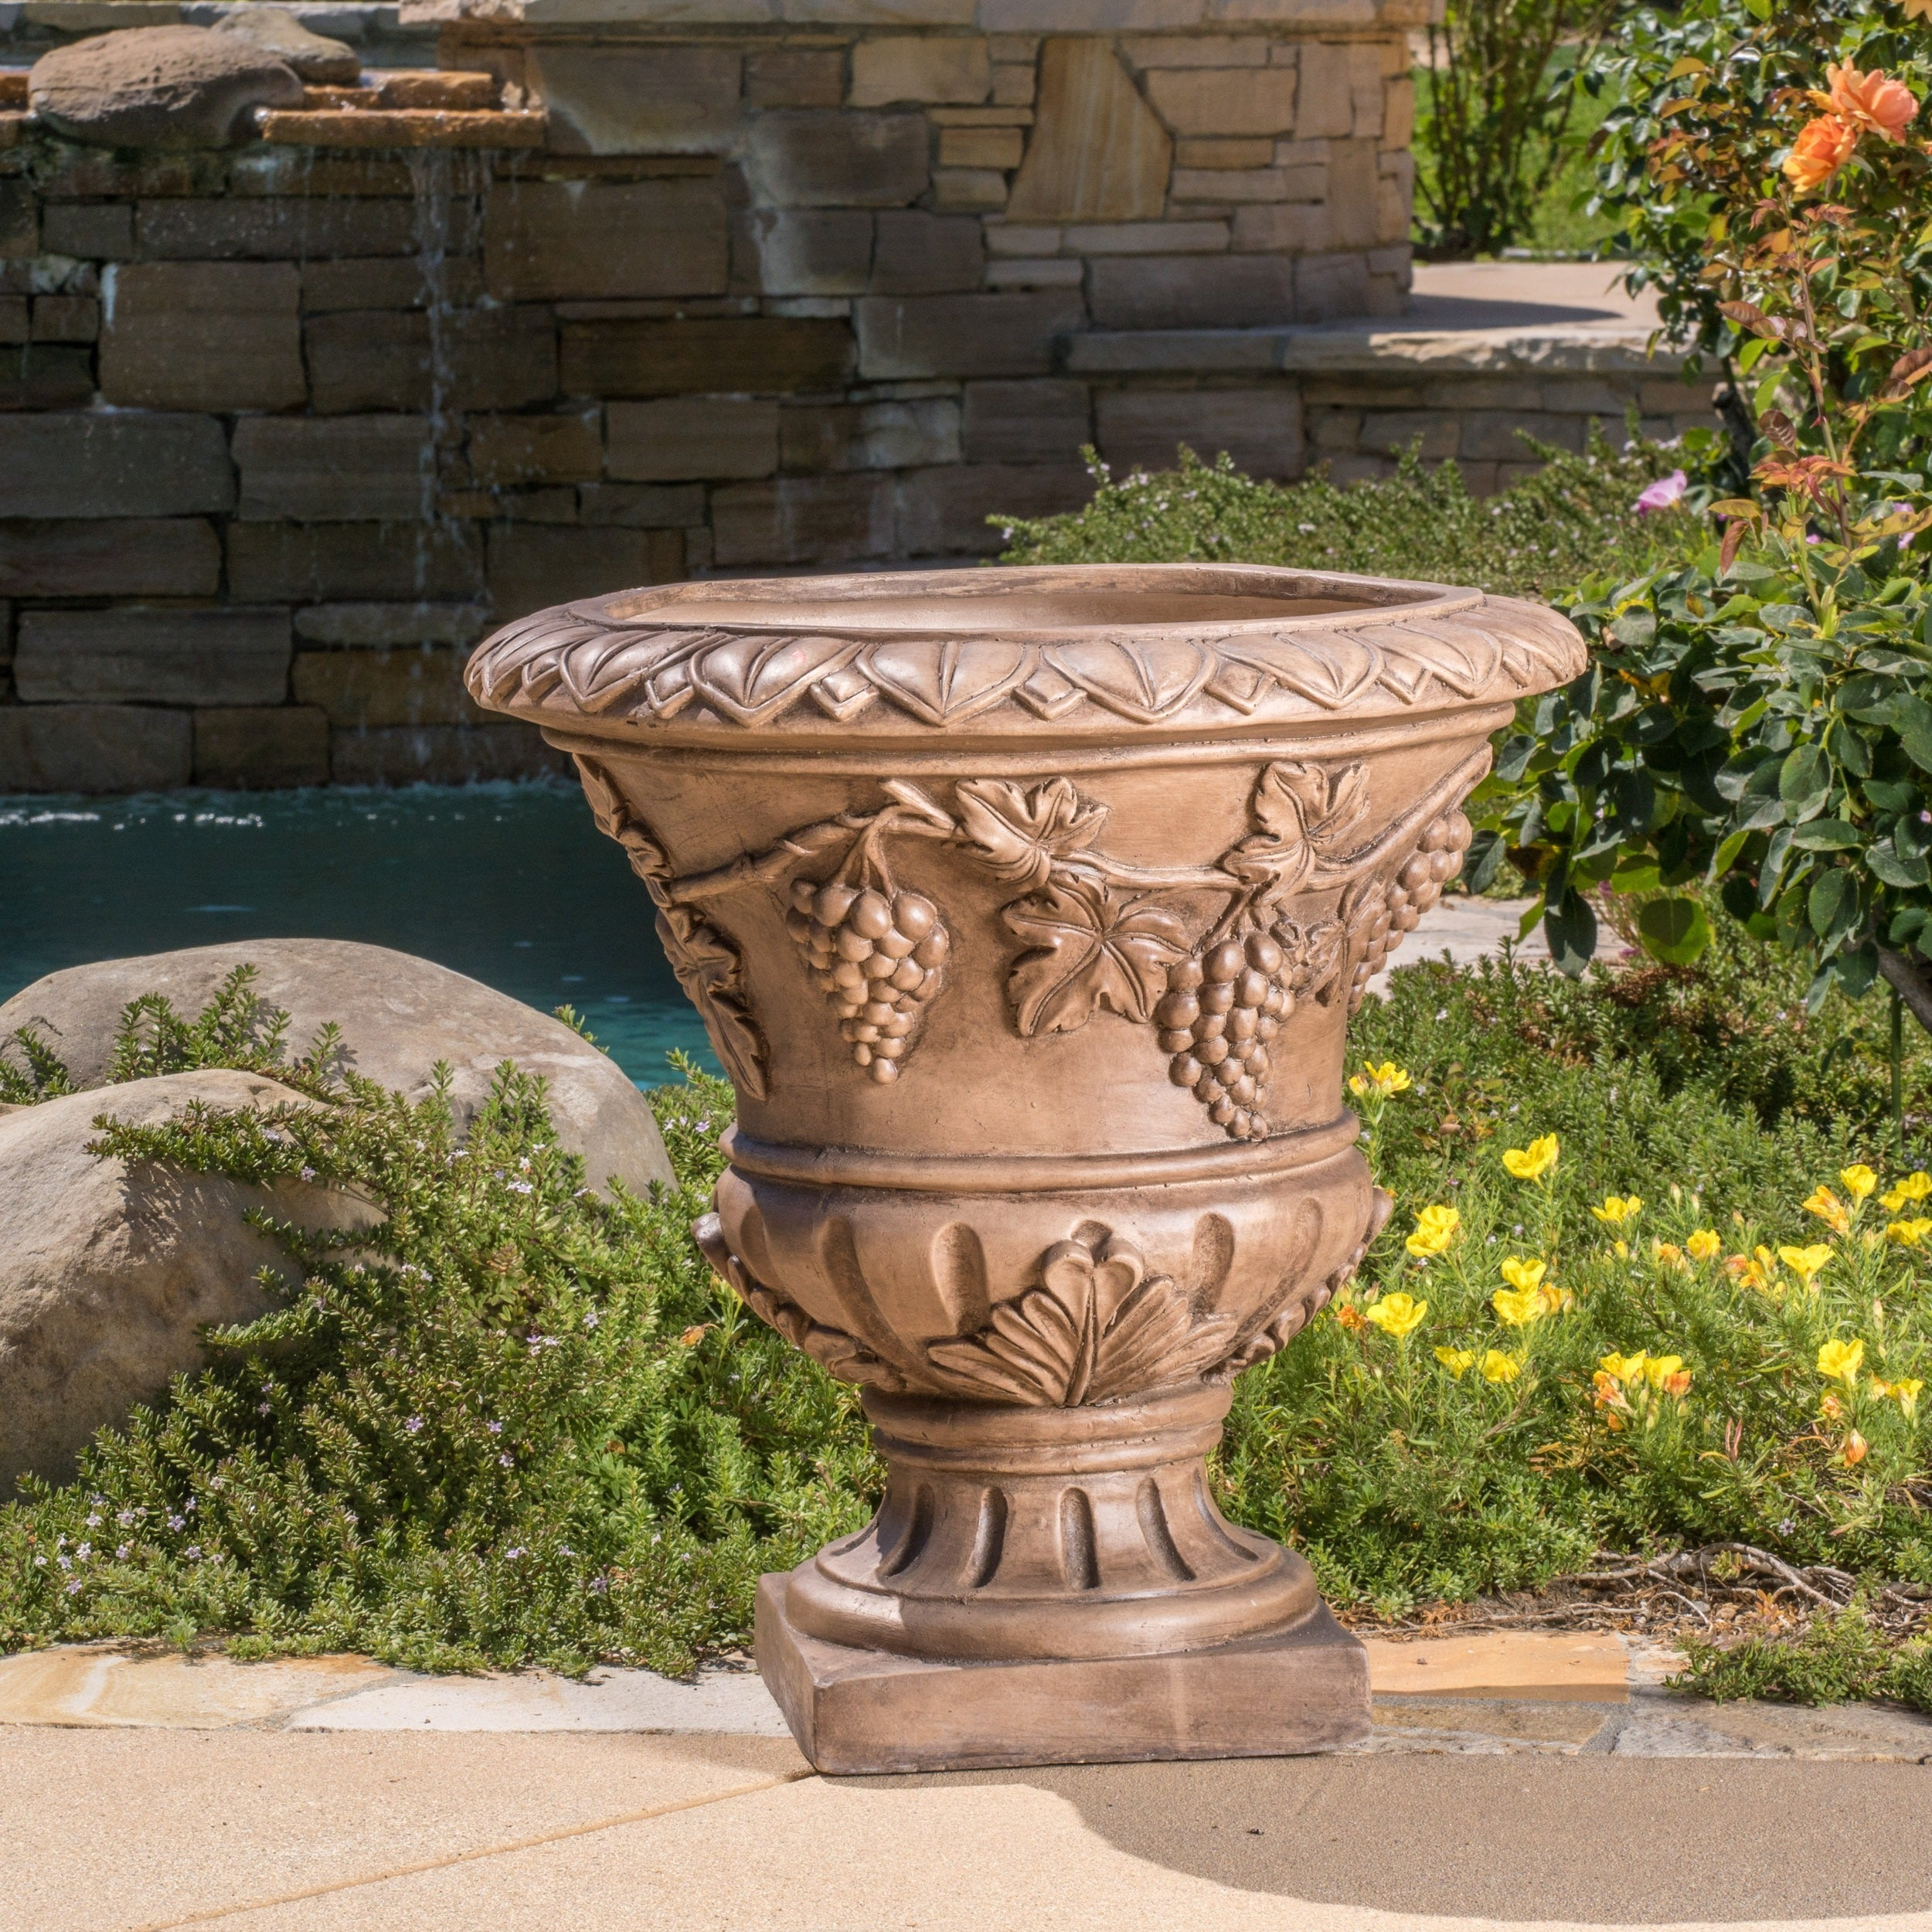 stone flower garden urn cast antique decor ornate pin pack plant planter low pot